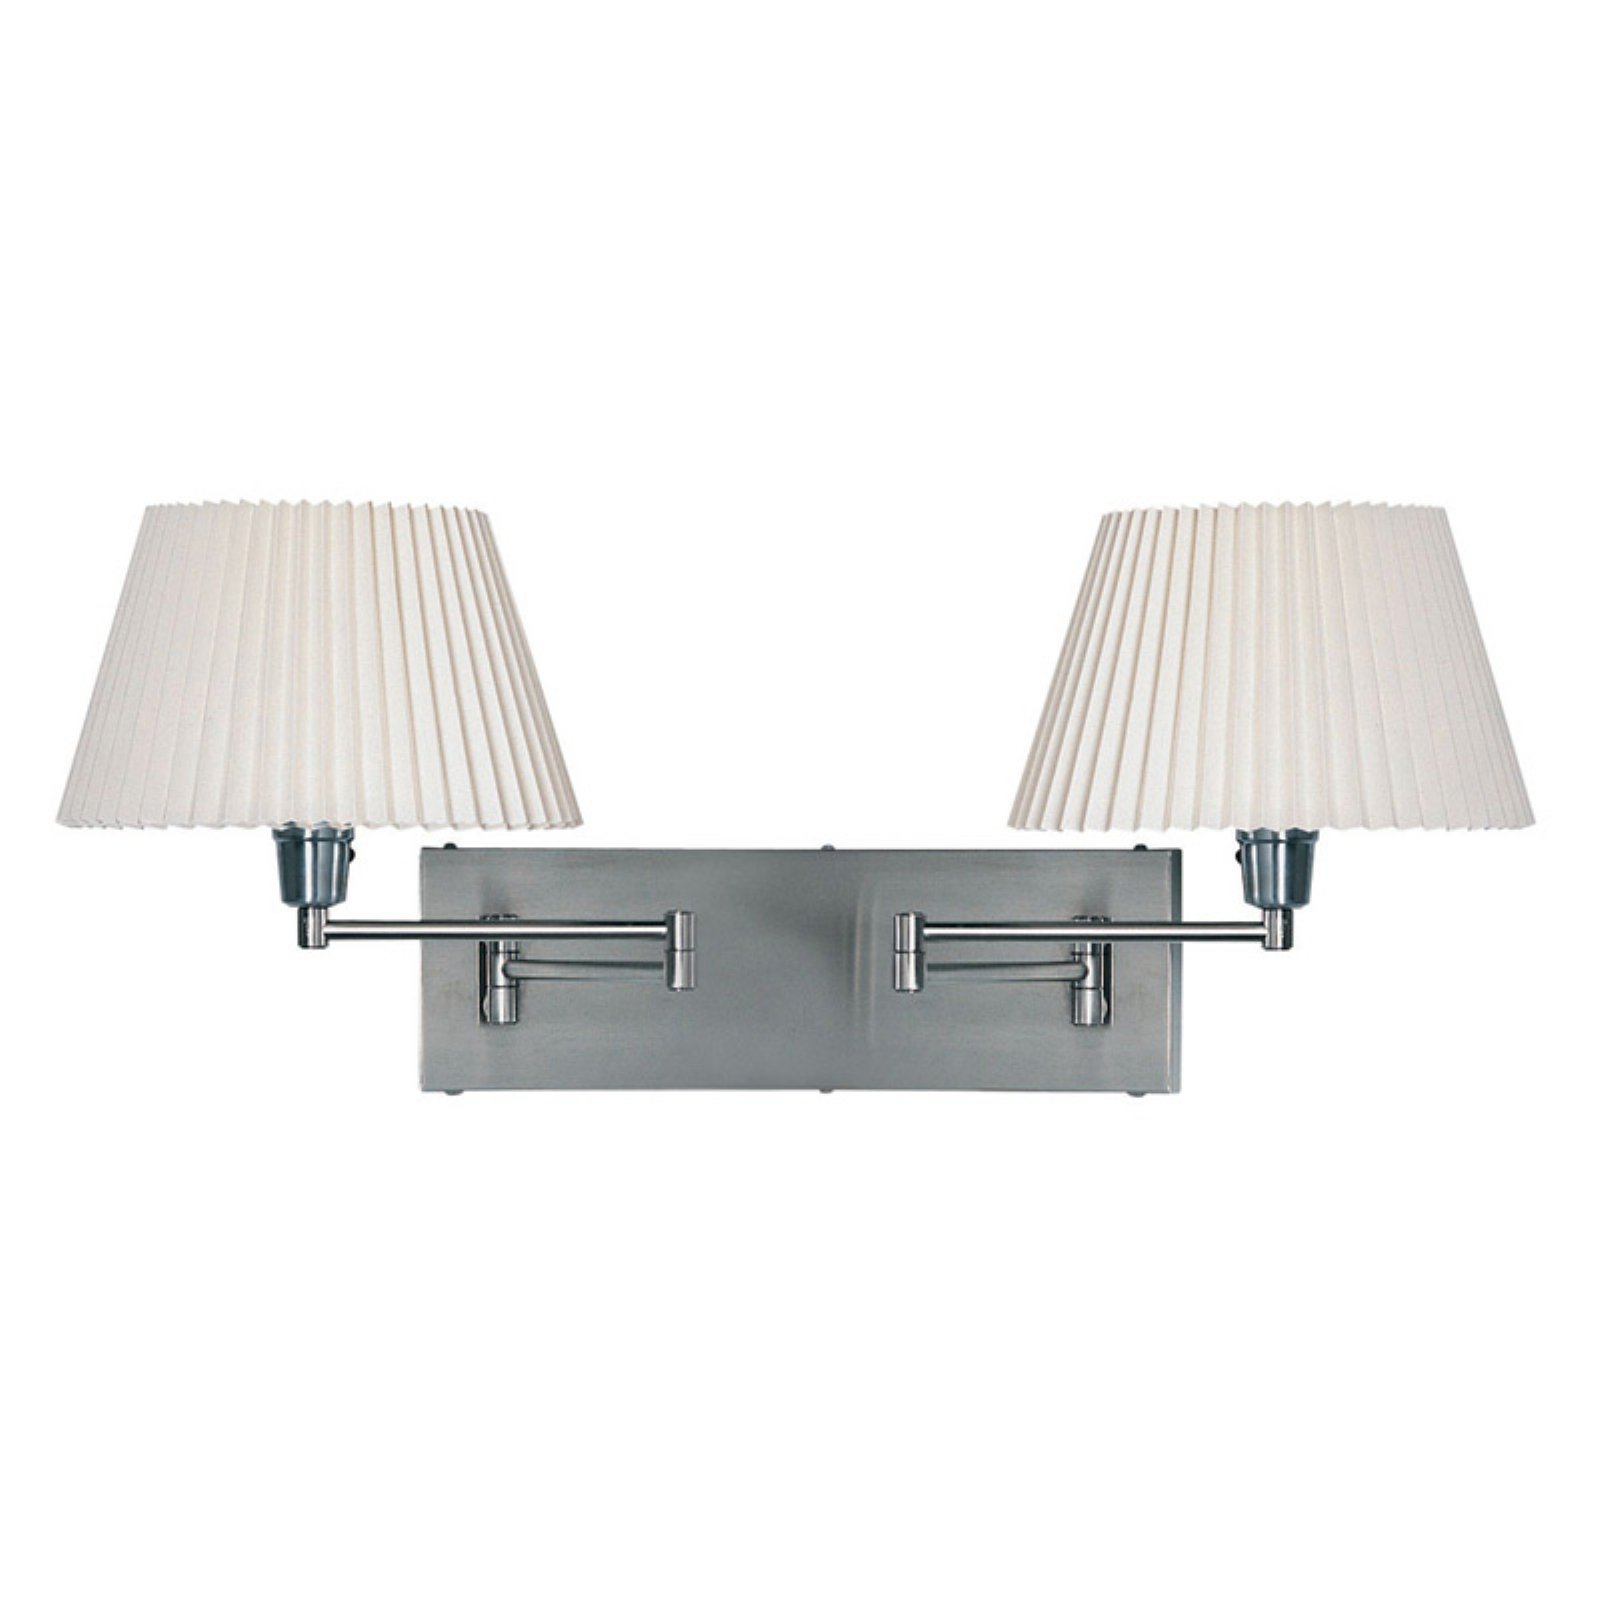 Dainolite DMWL802-SC Double Swing Arm Wall Lamp by Dainolite Ltd